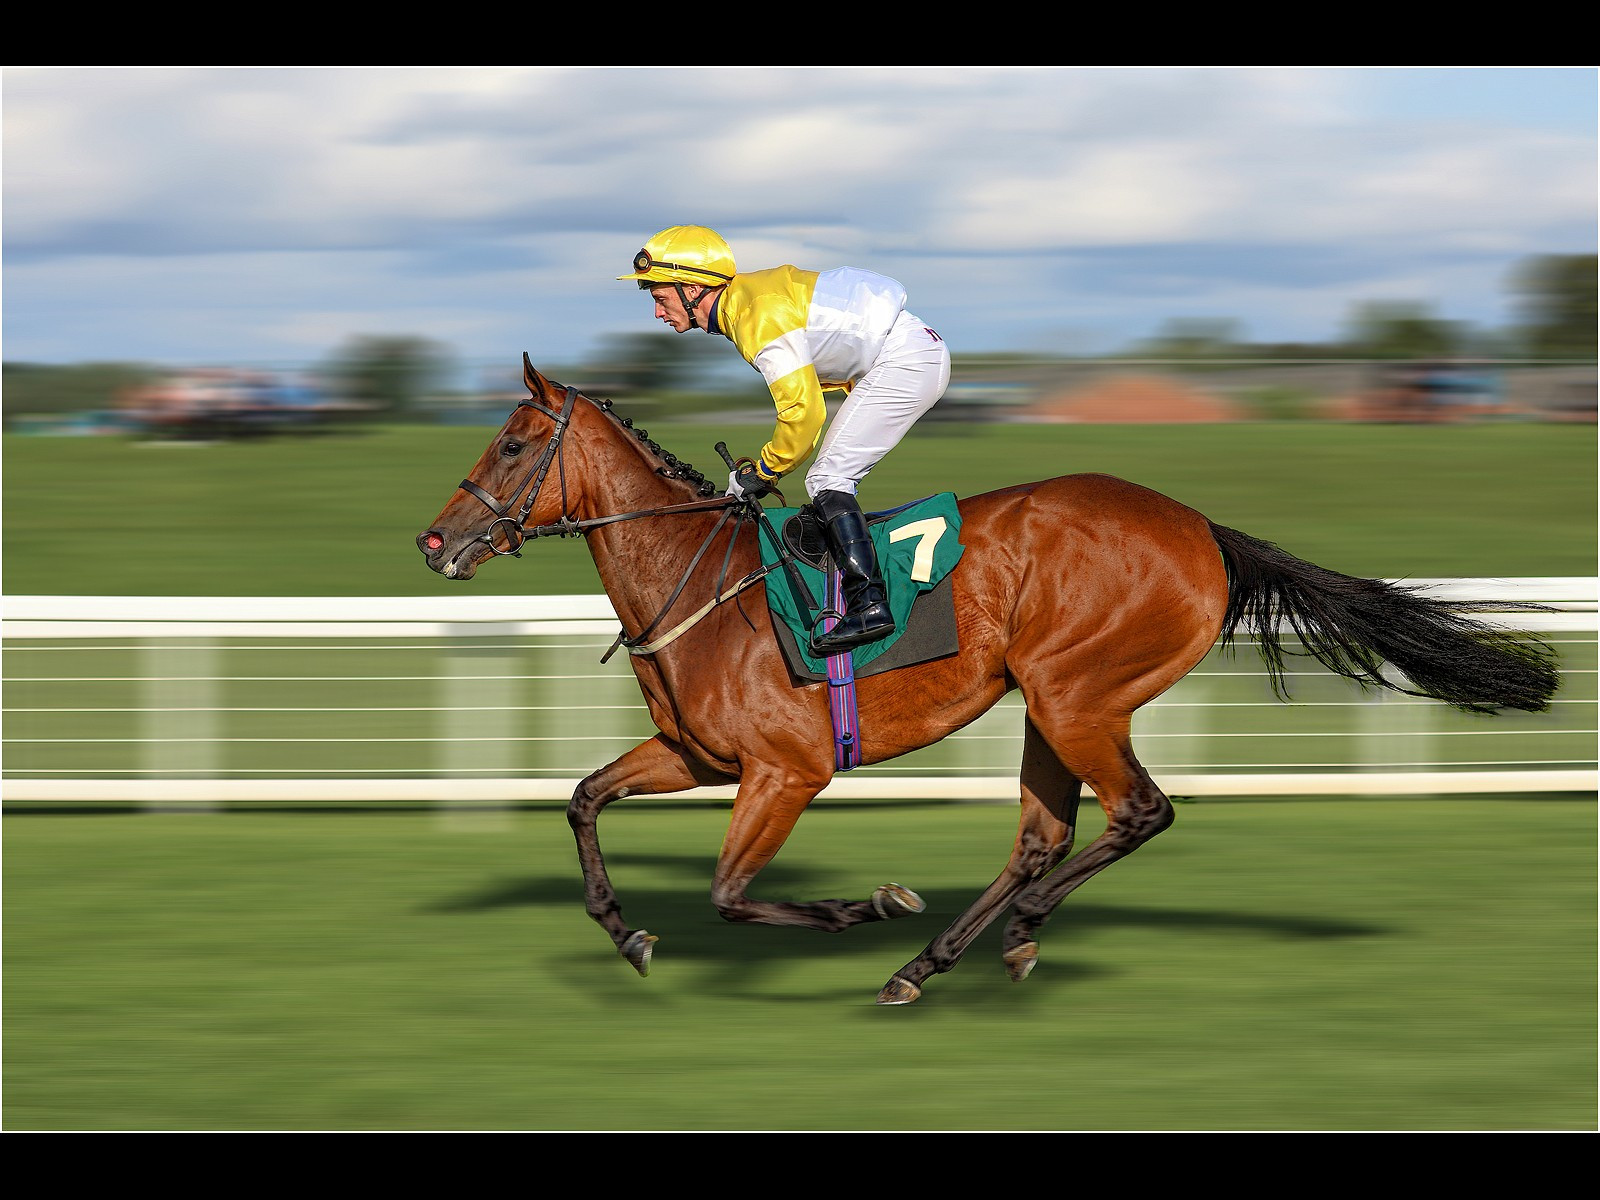 Thoroughbred, Going Down to the Start